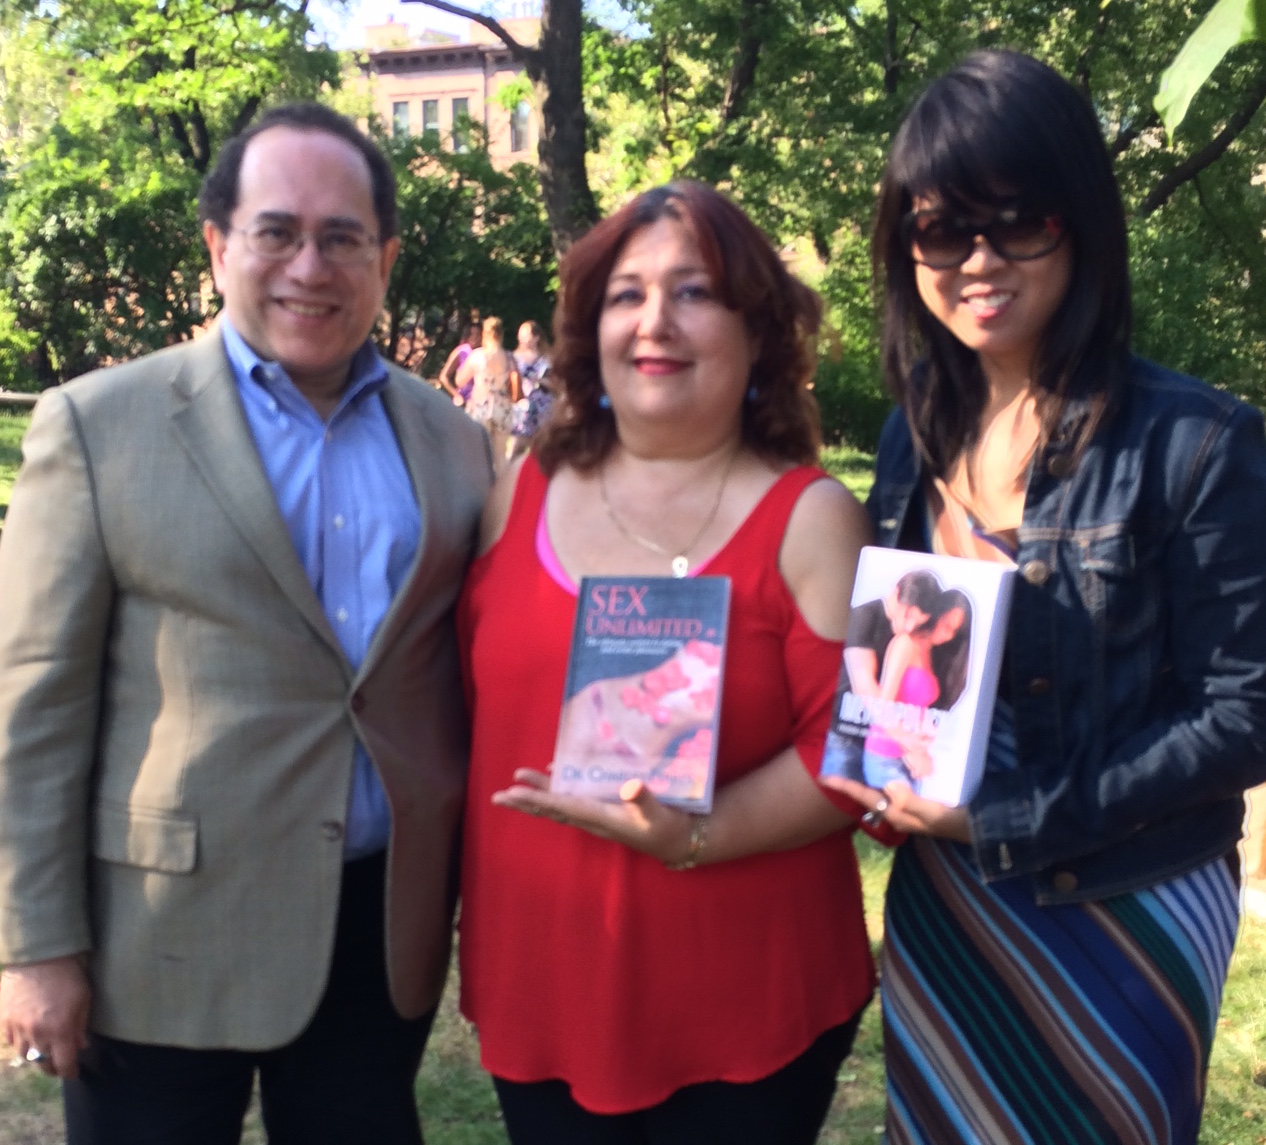 Victor Scott Rodriguez, Dr. Charley Ferrer and Felicia Lin